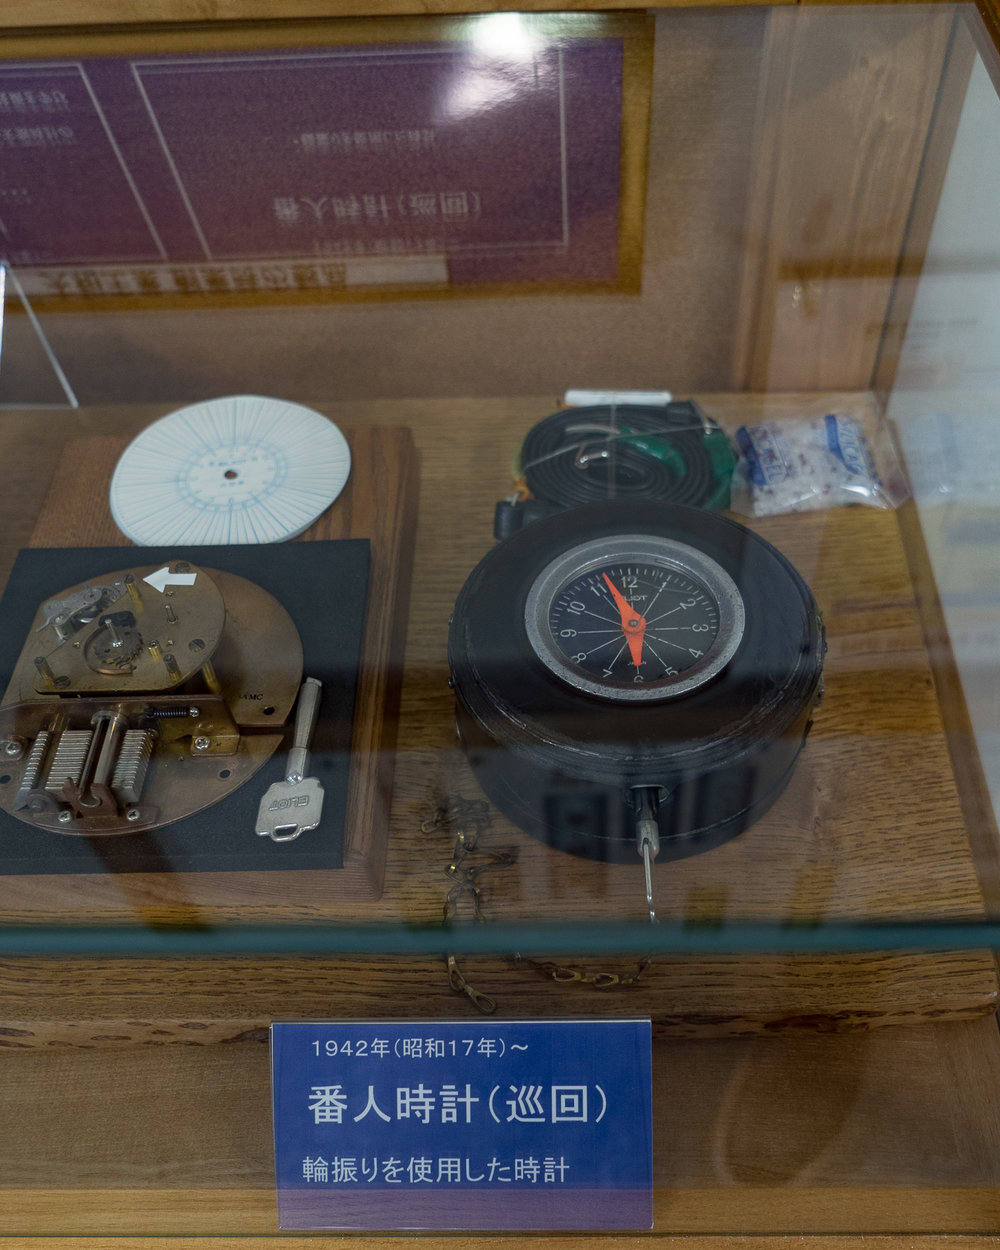 Watchman's Patrol Clock Display